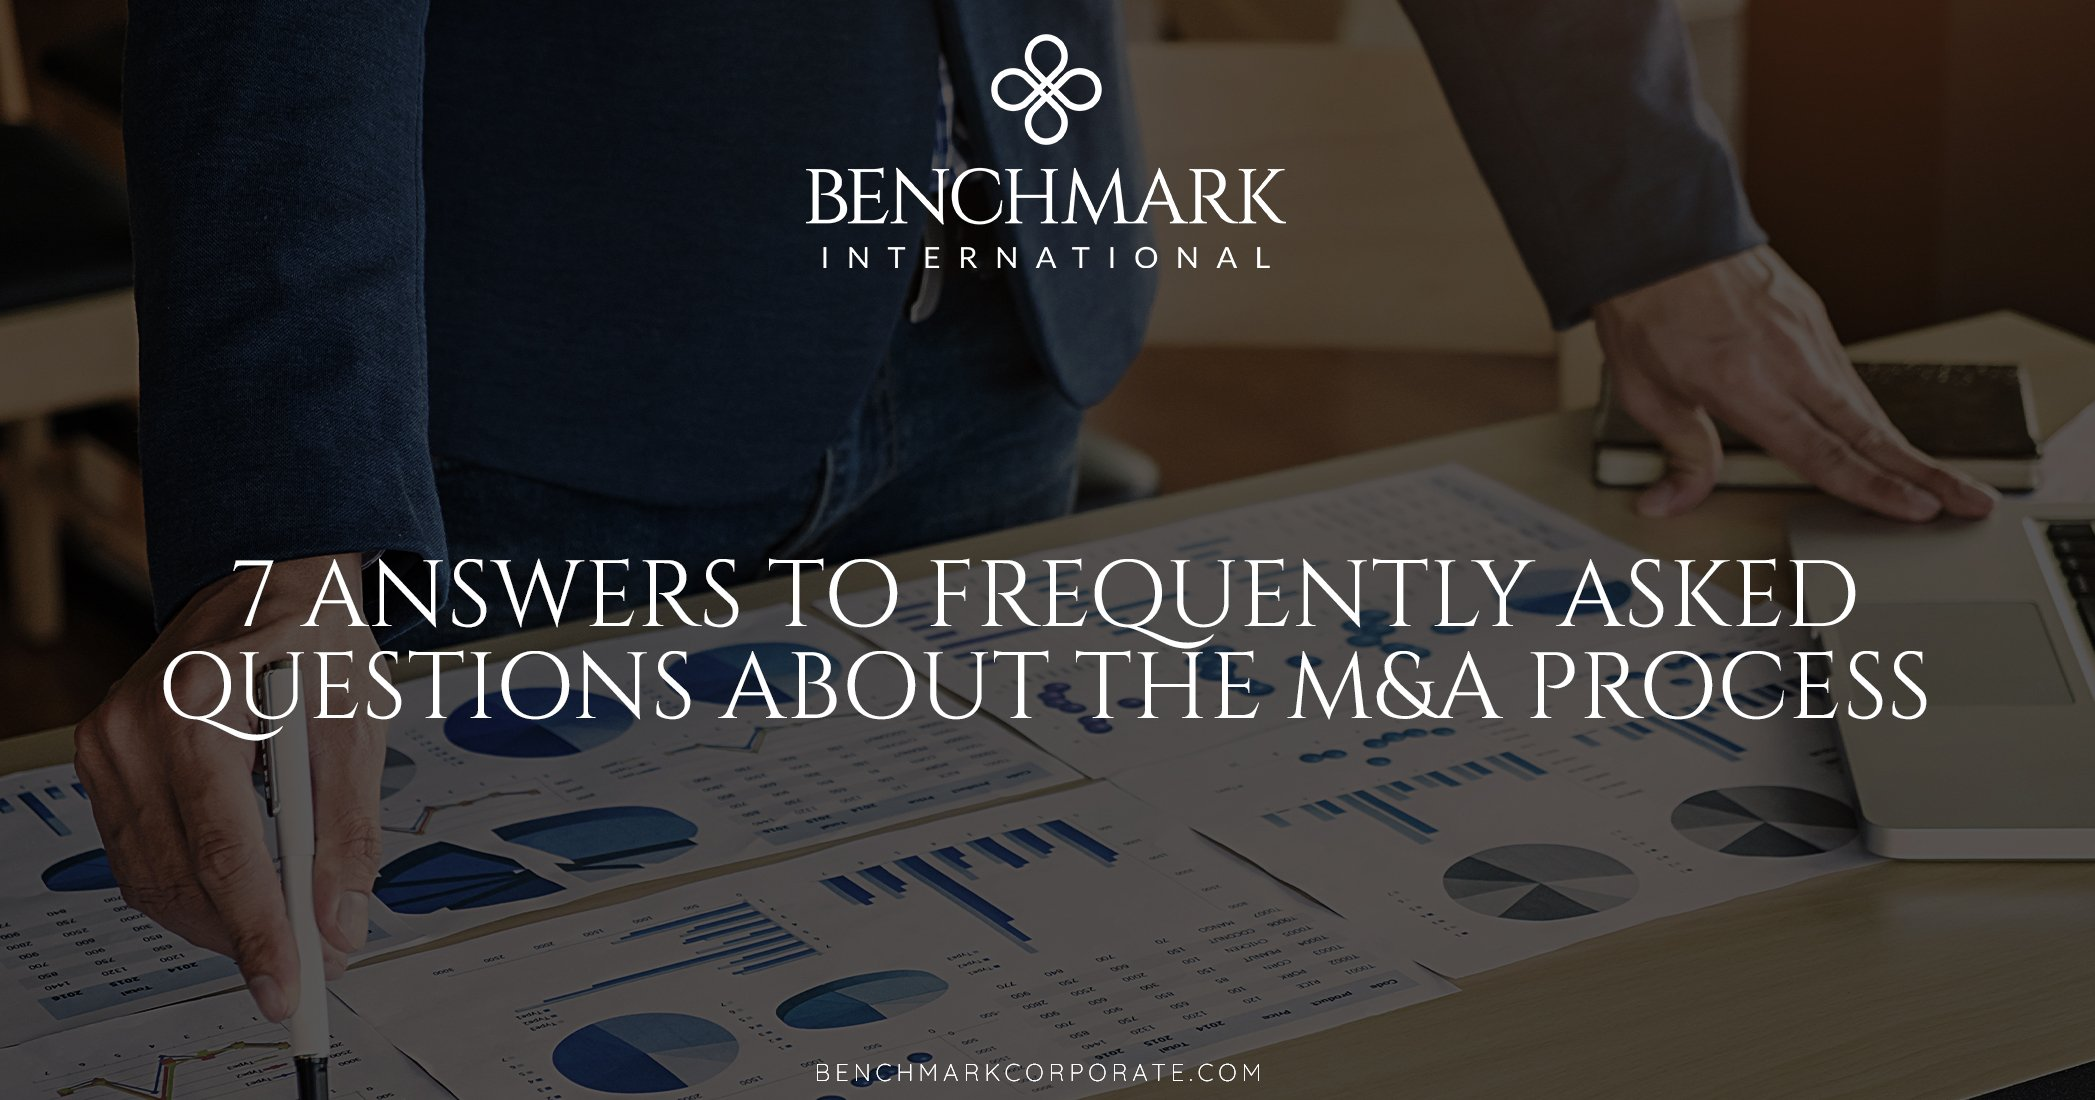 7 Answers to Frequently Asked Questions about the M&A Process